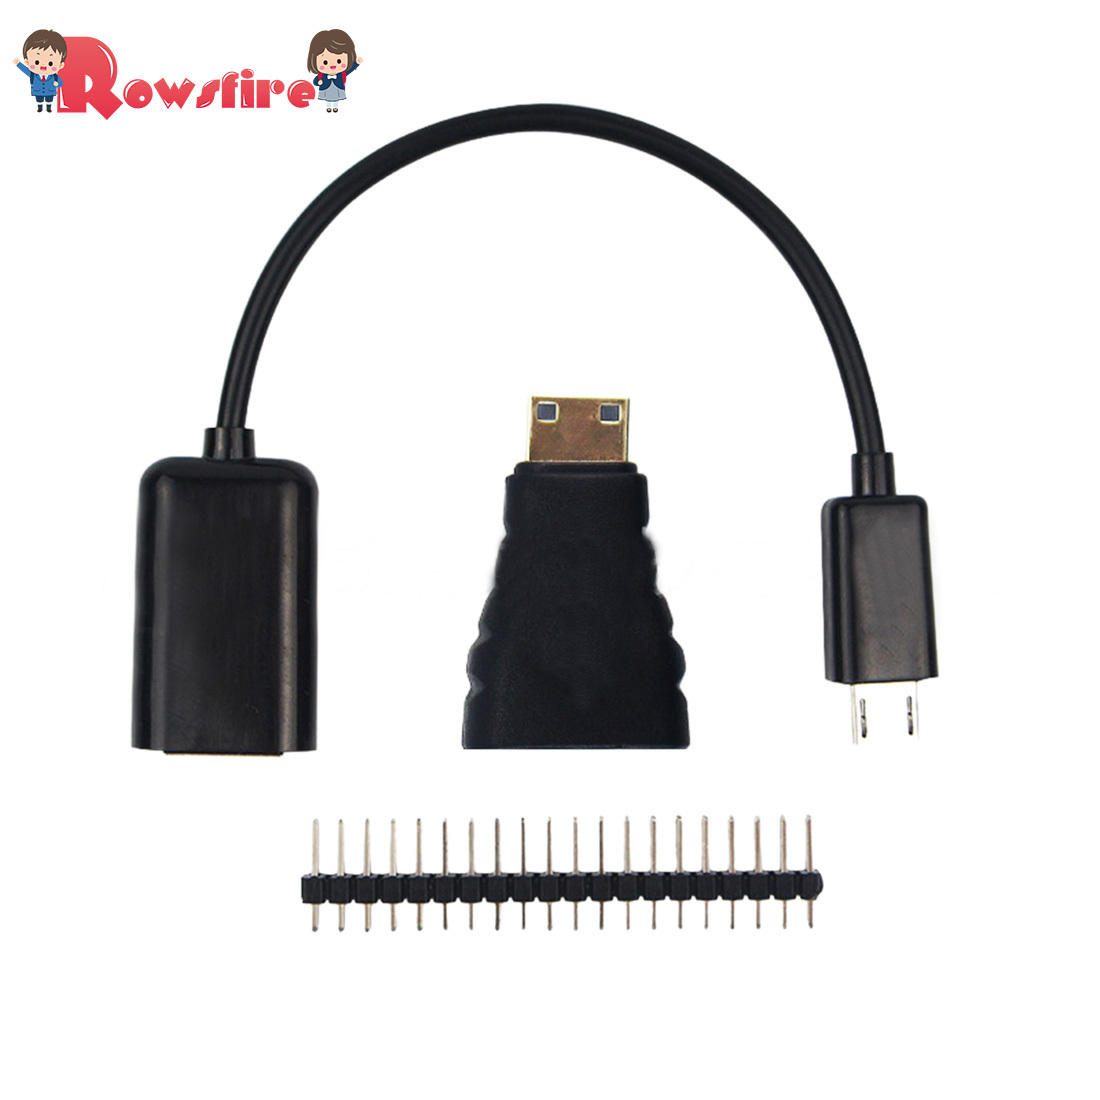 Set With Mico USB To OTG Cable/Hdmi Female To Mini Dhmi Male Adaptor/40P Pin Header For Raspberry Pi Zero